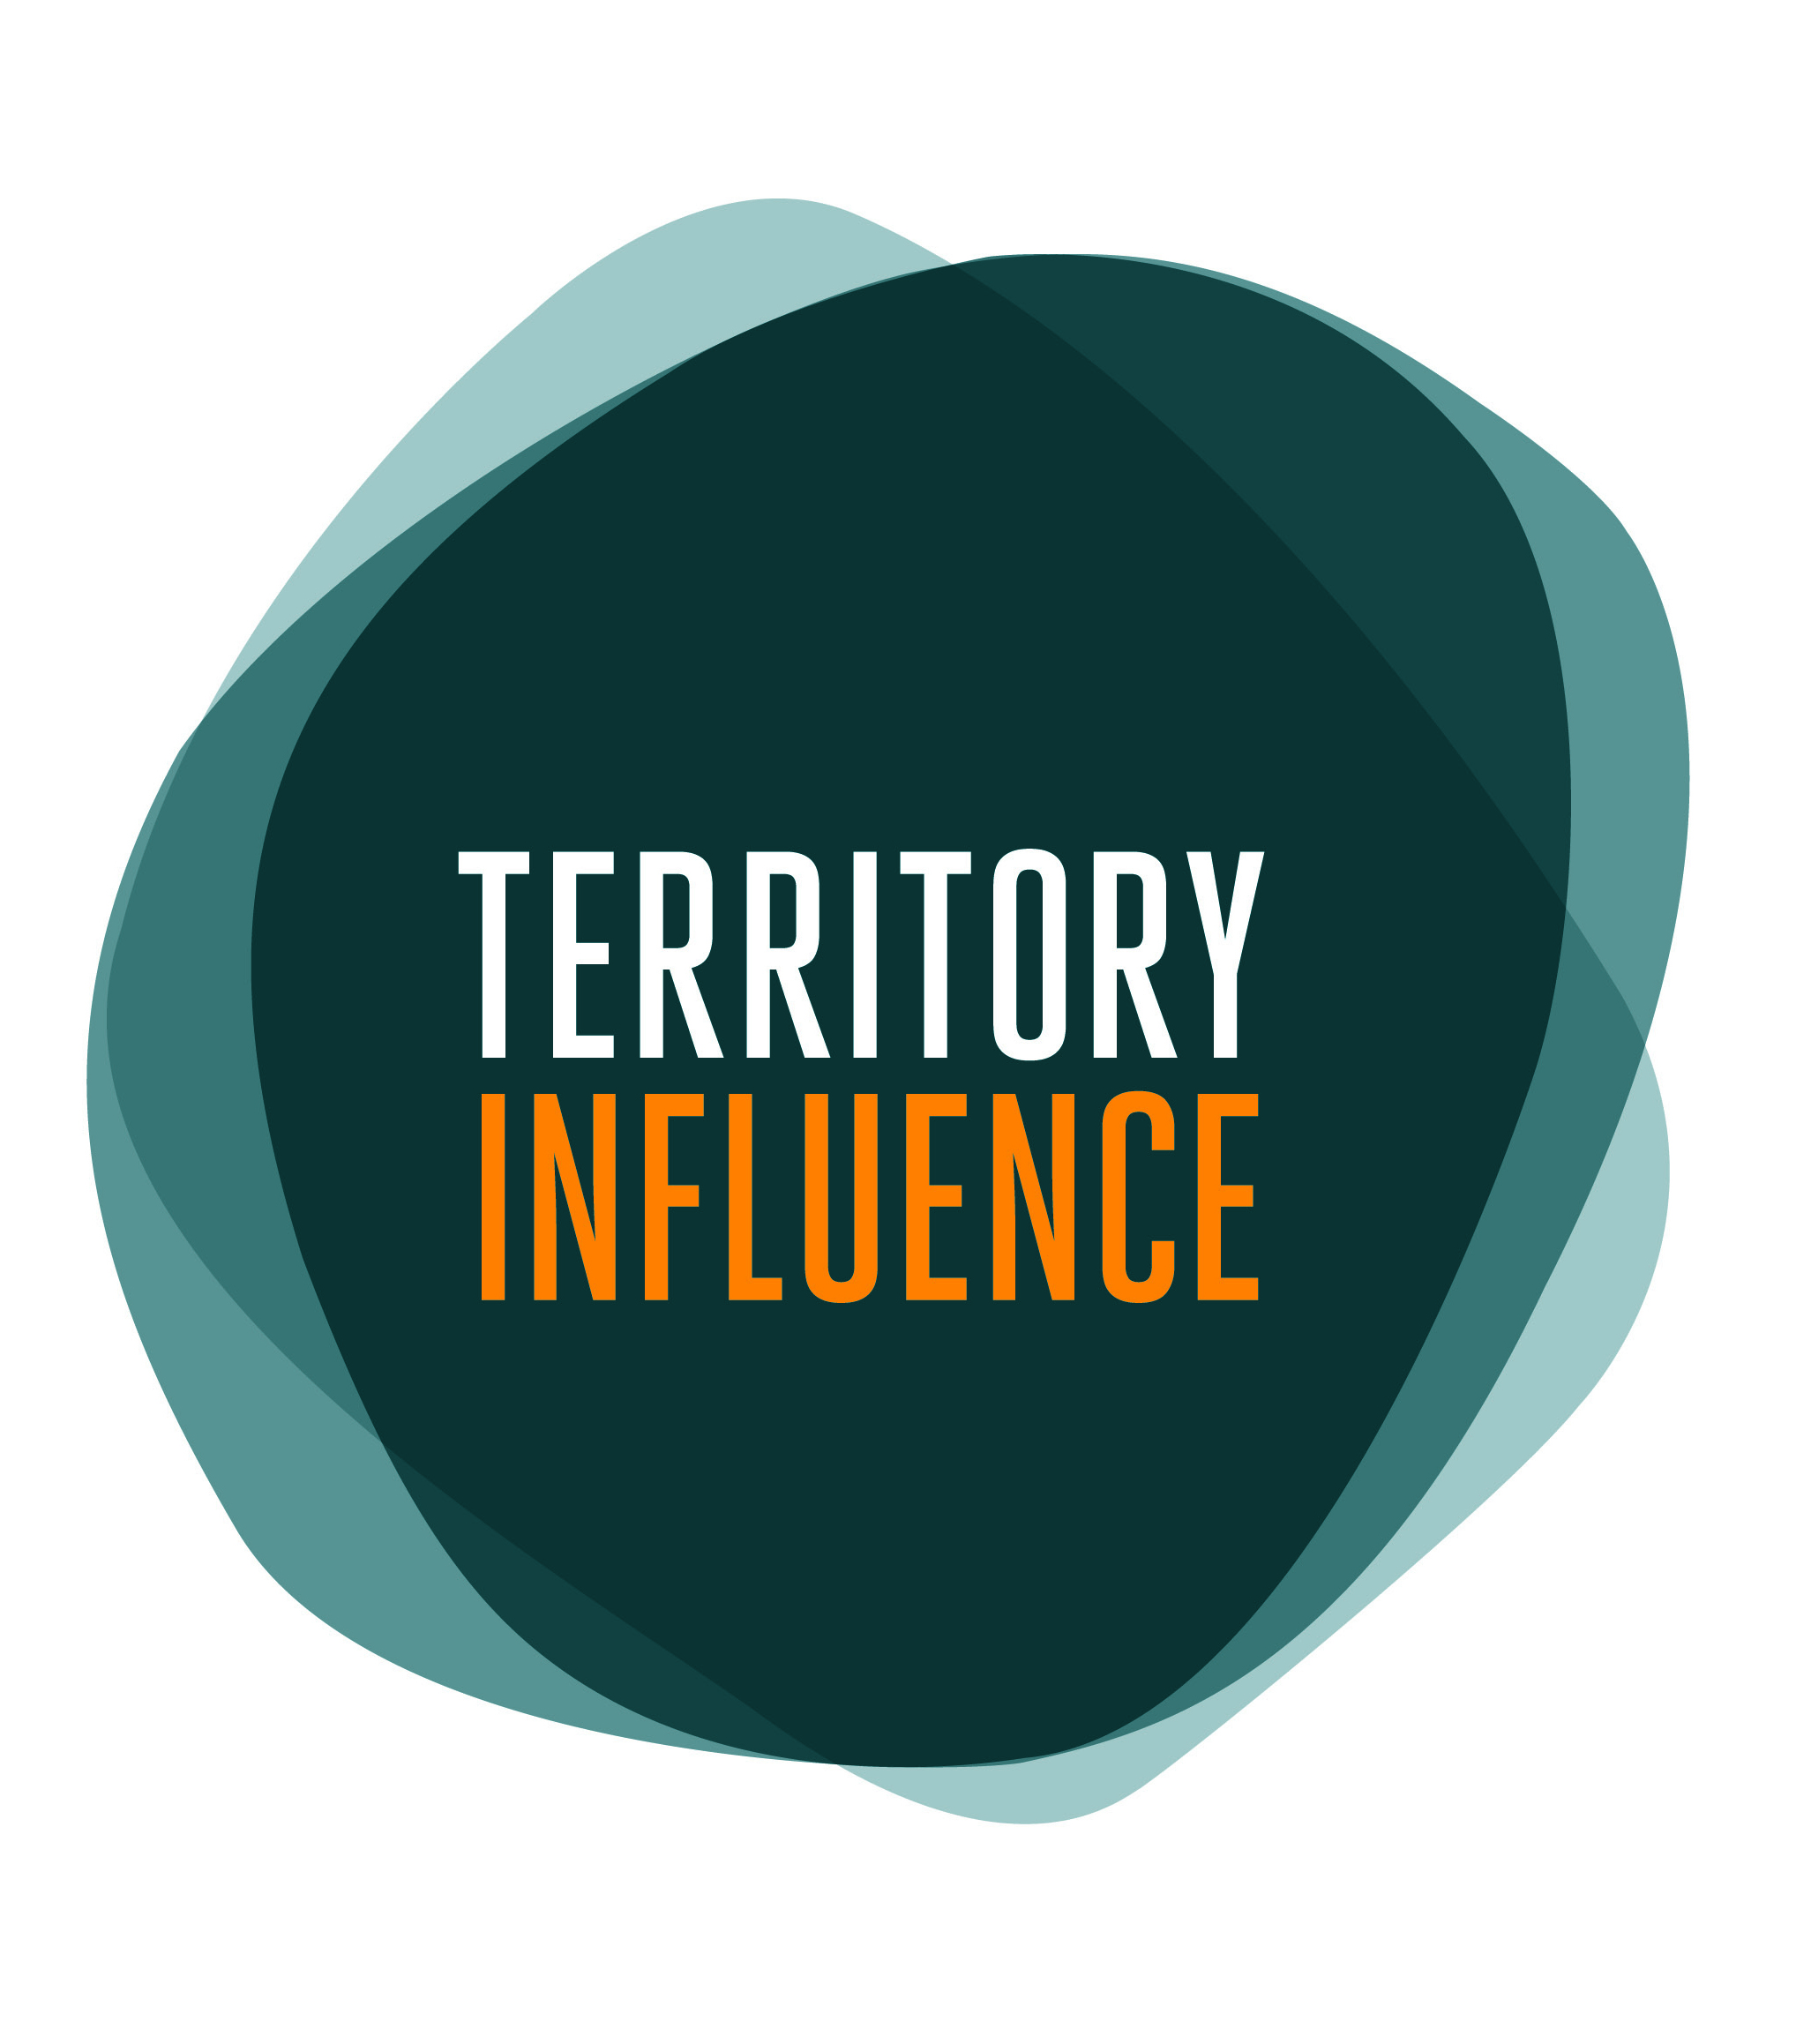 Territory macht strategisches Influencer Marketing möglich